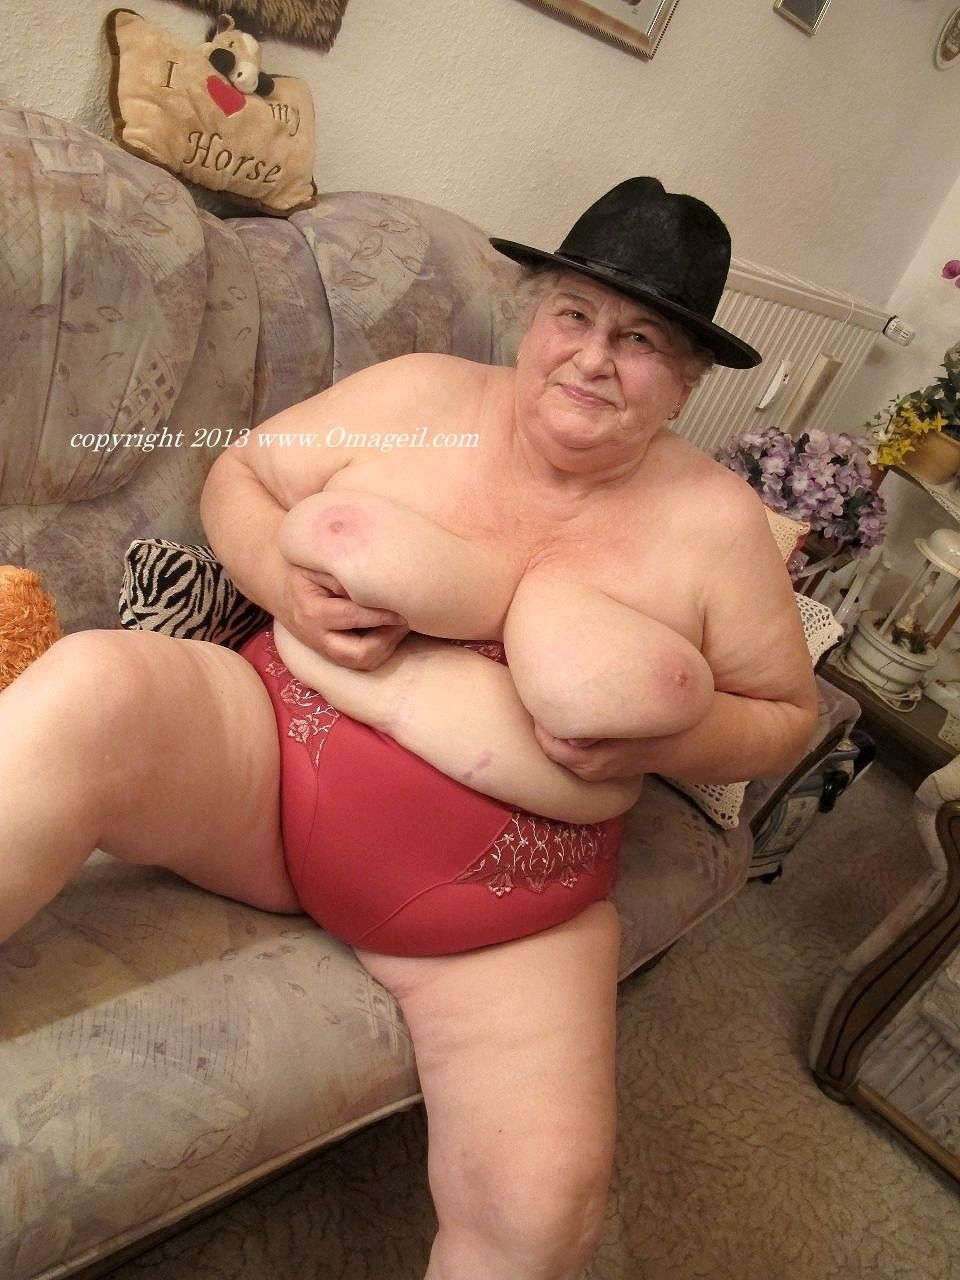 Busty mature women having sex seems